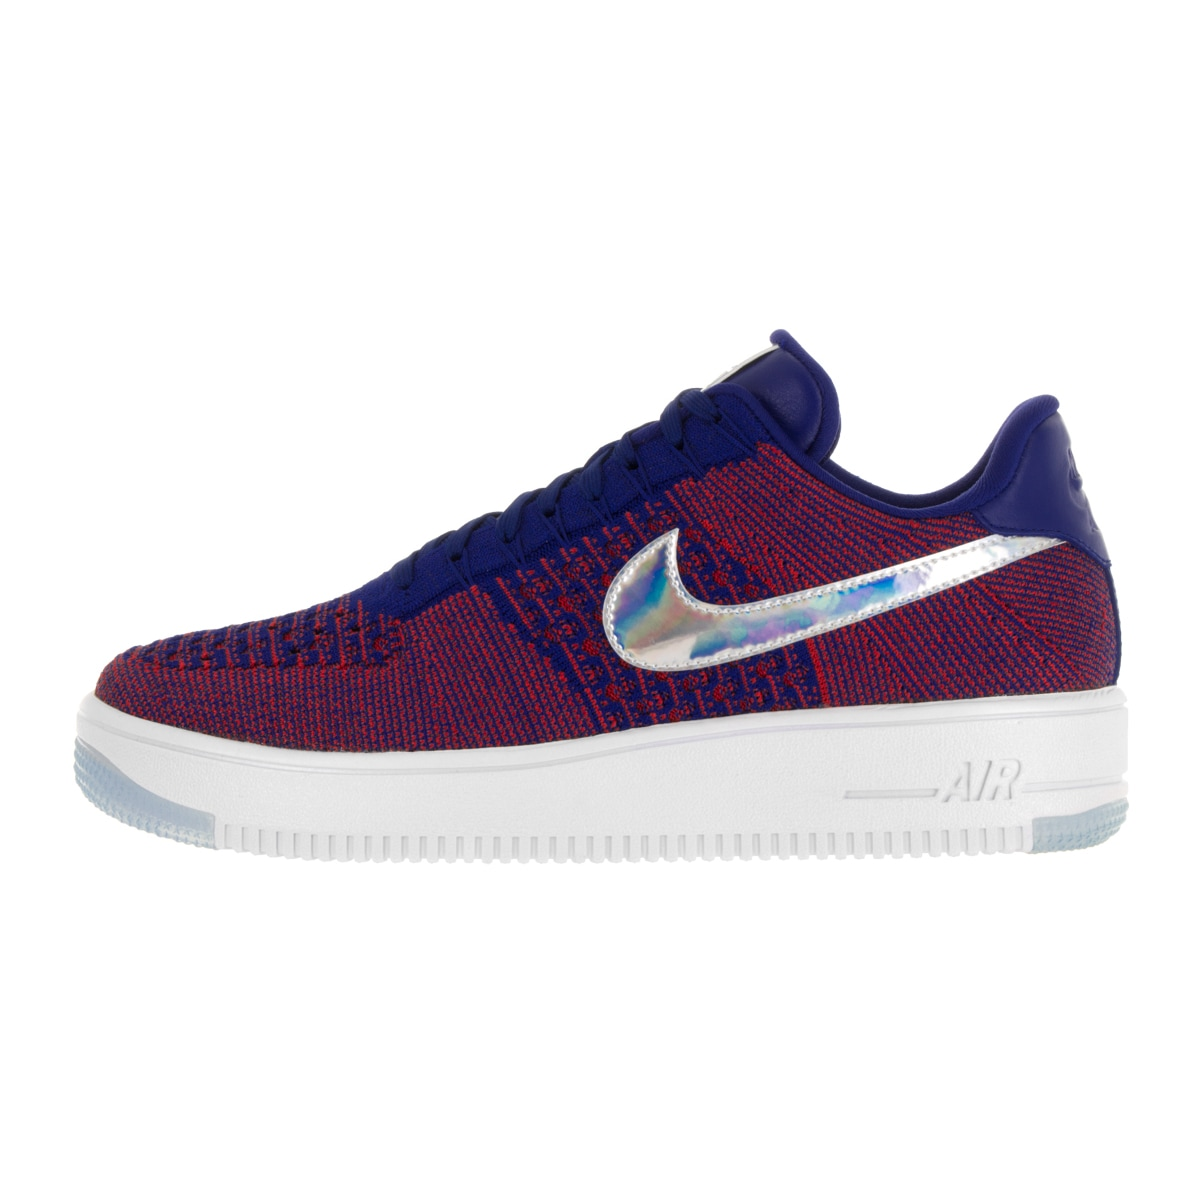 b9d15311b40a Shop Nike Men s AF1 Ultra Flyknit Low Prm Gym Red Deep Royal Blue White  Basketball Shoe - Free Shipping Today - Overstock - 13394669